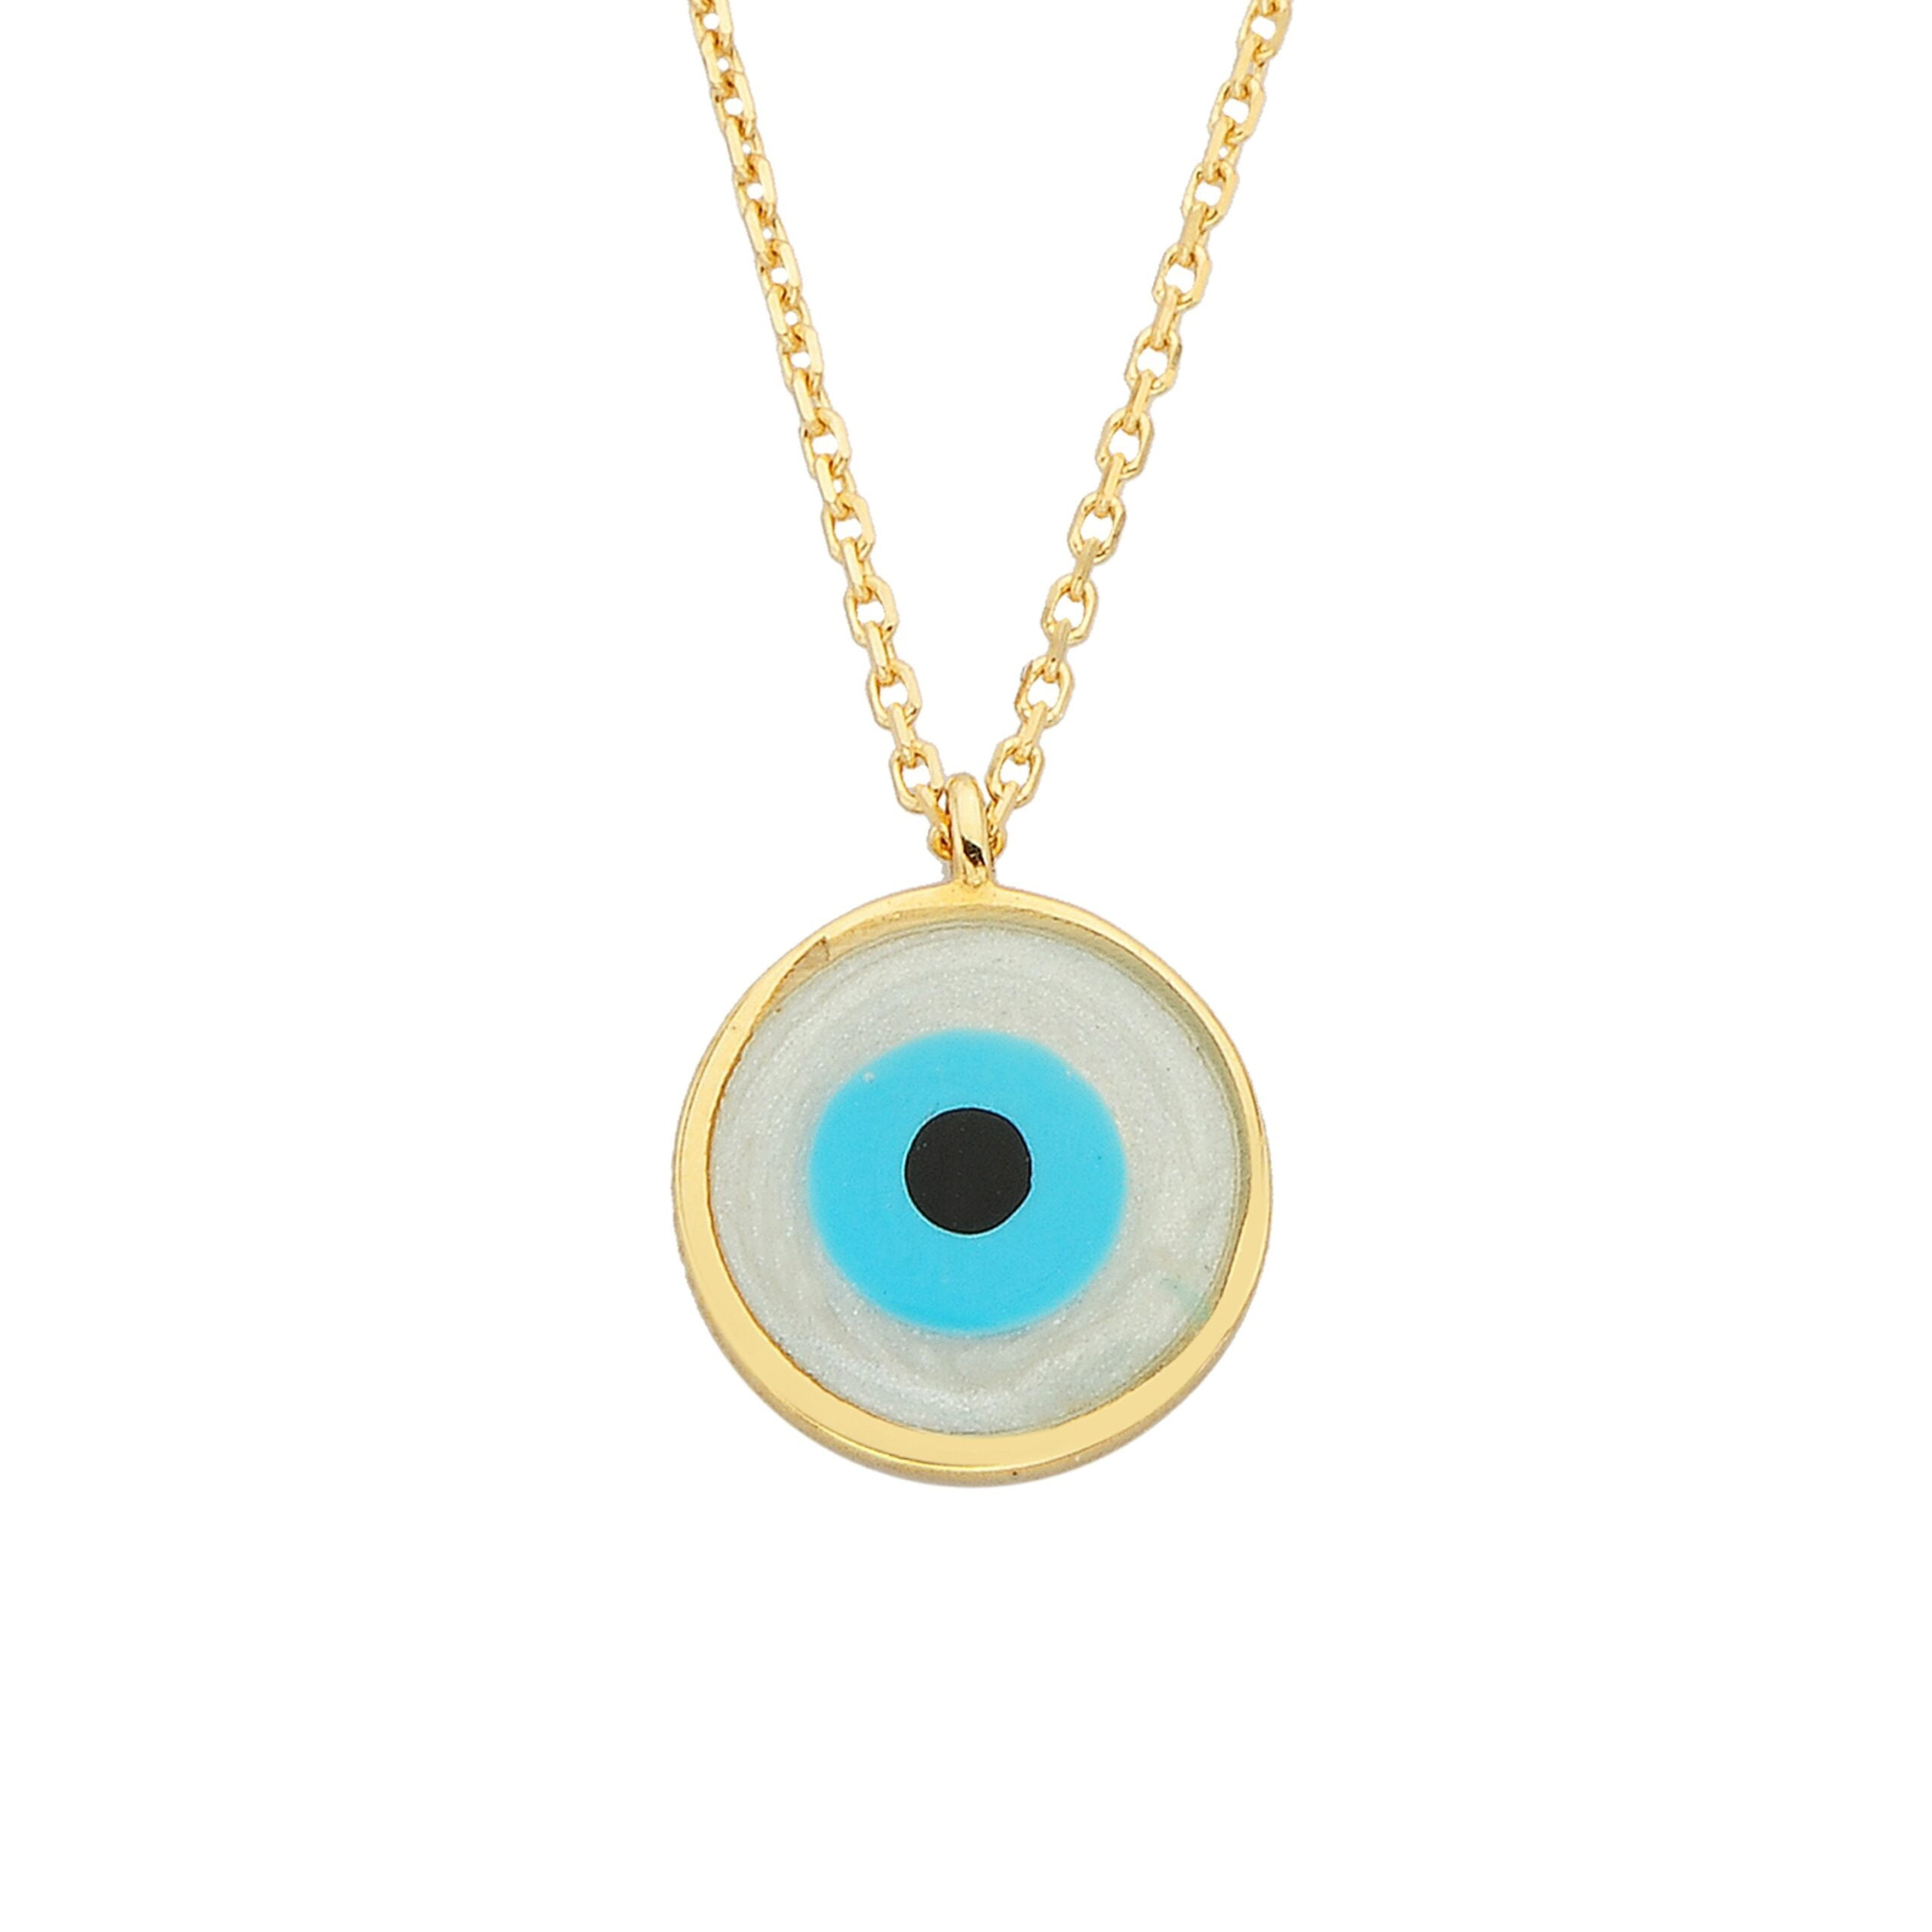 Evil Eye Mother of Pearl Necklace Lucky Luck Nazar Protection For Women 14K Yellow Gold Round Pendant Jewelry Birthday Mother's Day Christmas Gift